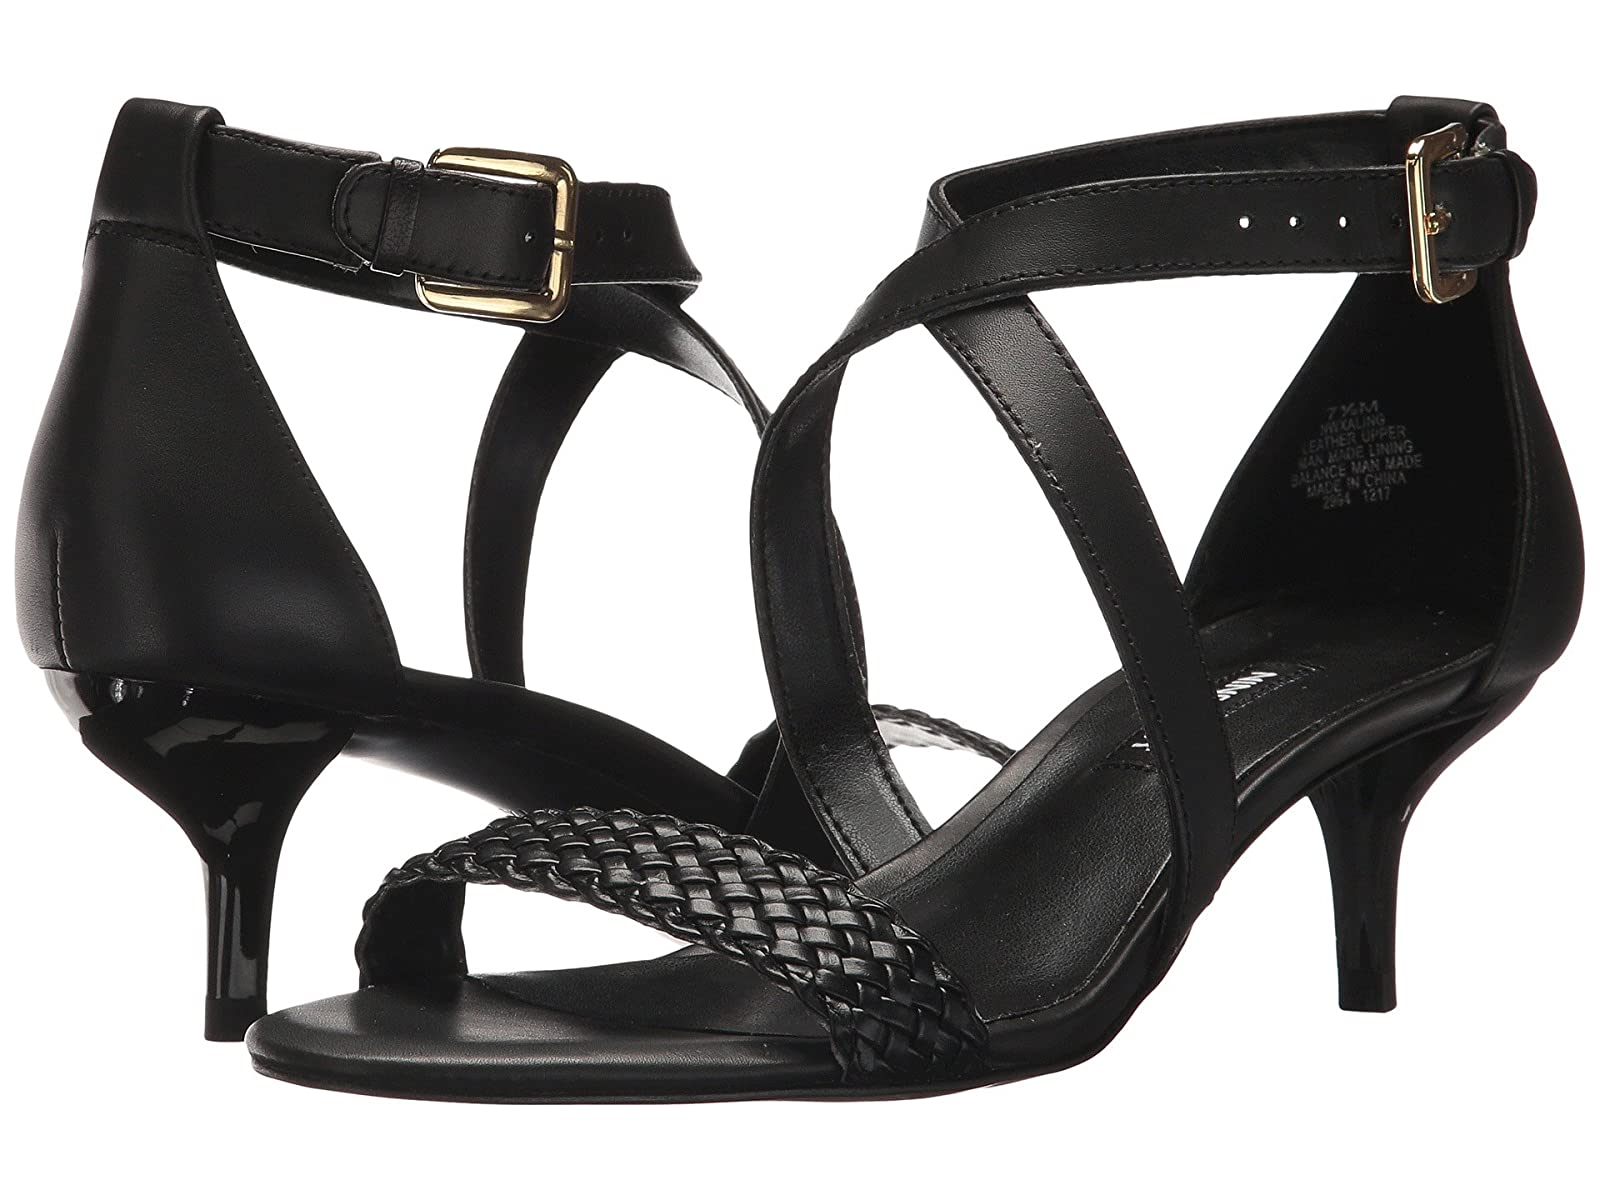 Nine West Xaling Strappy Heel SandalsCheap and distinctive eye-catching shoes